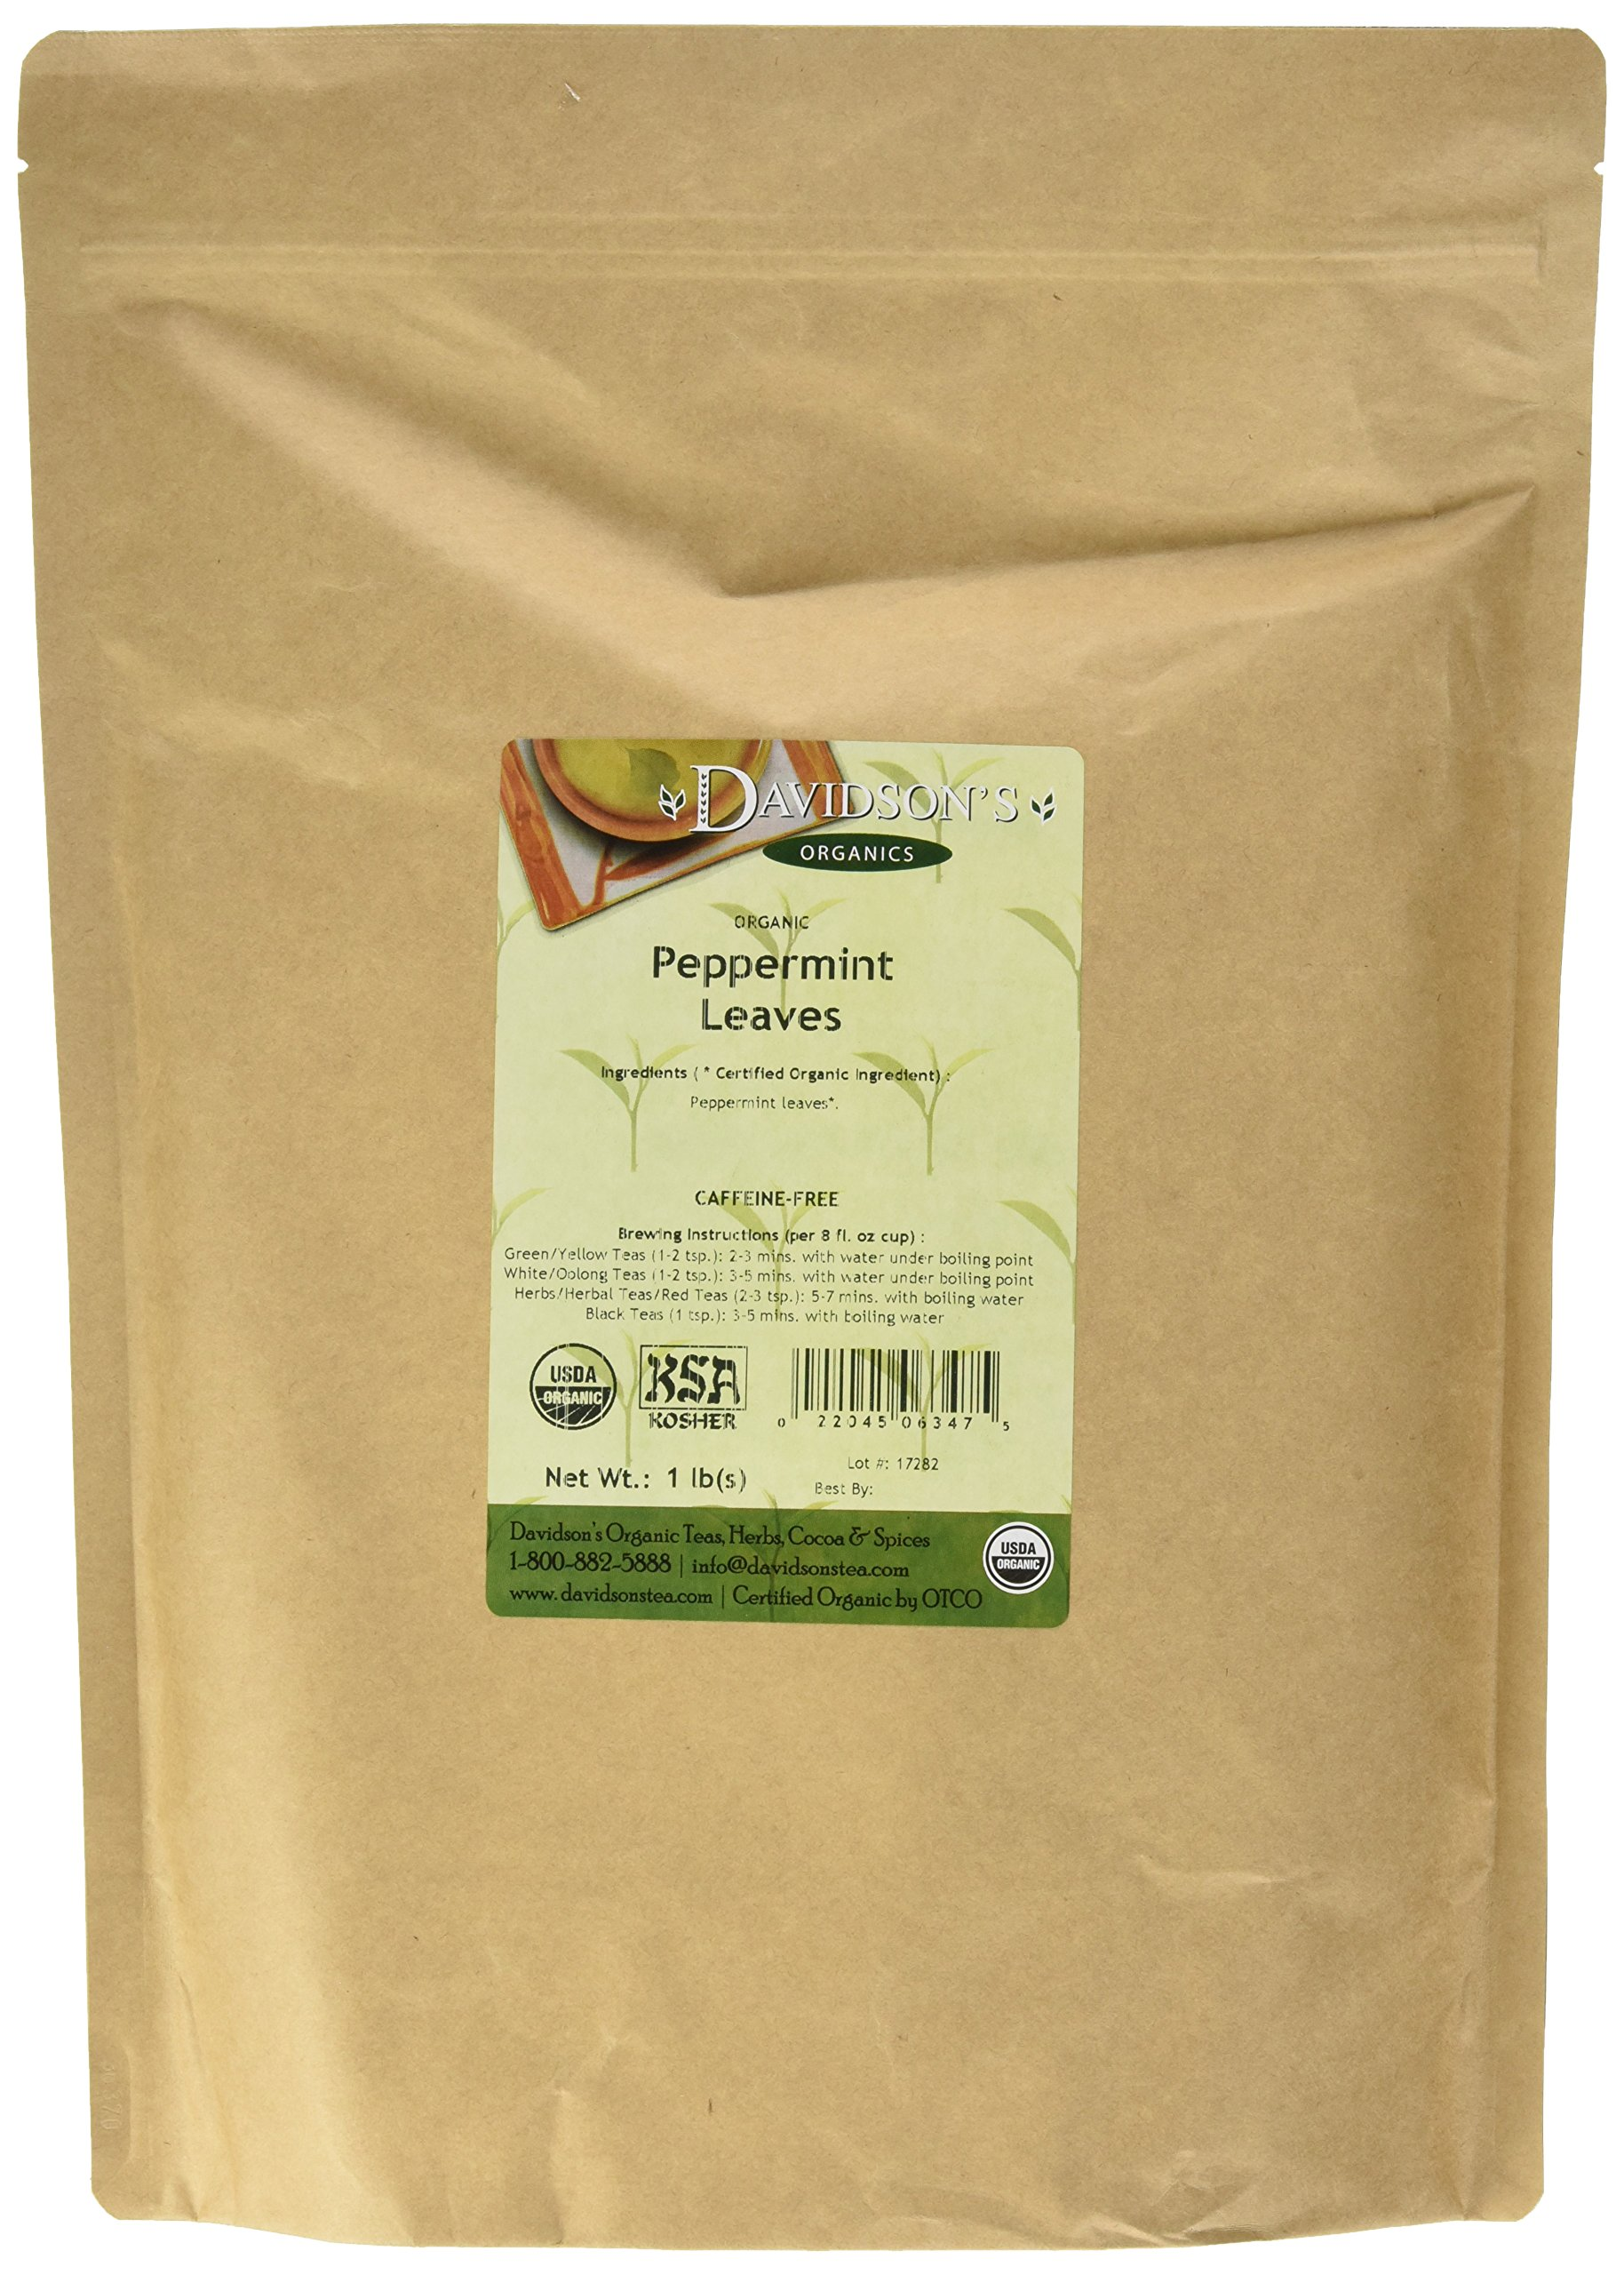 Davidson's Tea Bulk, Organic Peppermint Leaves, 16-Ounce Bag